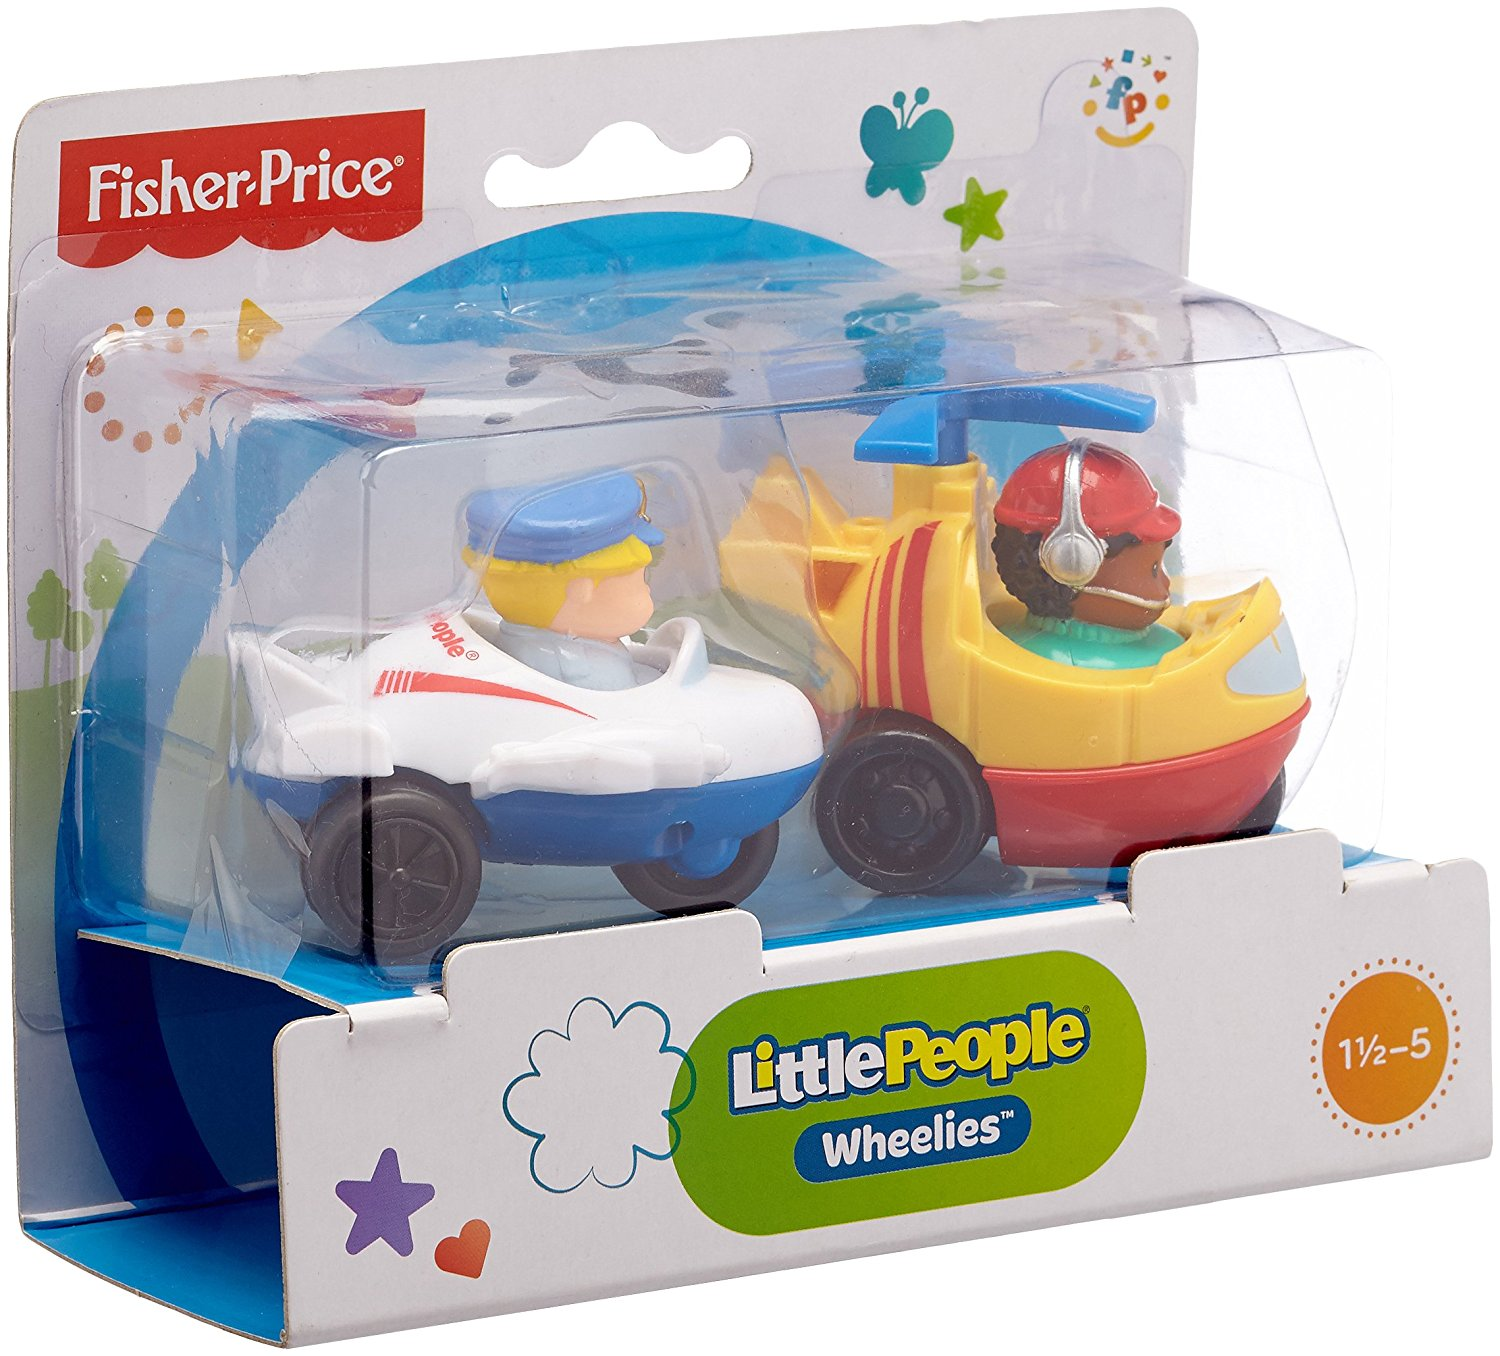 Fisher-Price Little People Wheelies Transportation Assort...